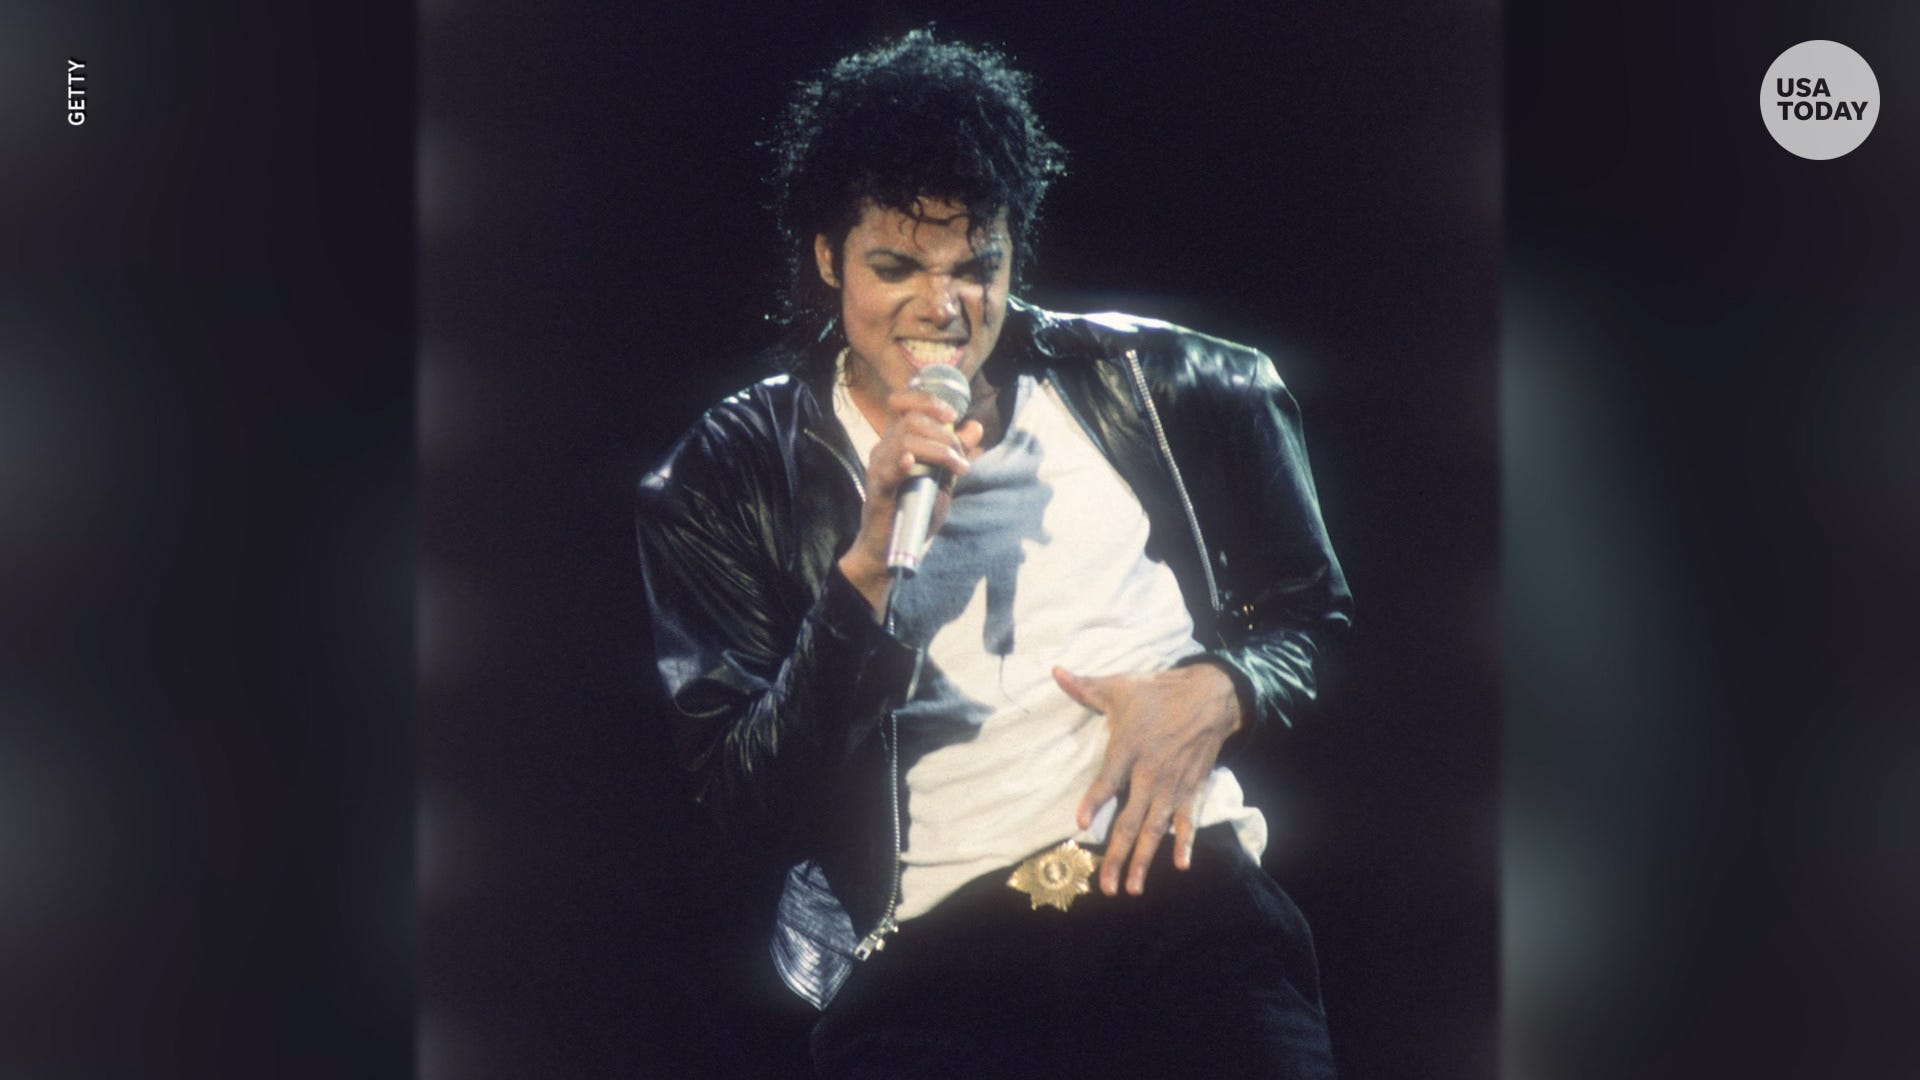 6 reasons Michael Jackson is still the King of Pop